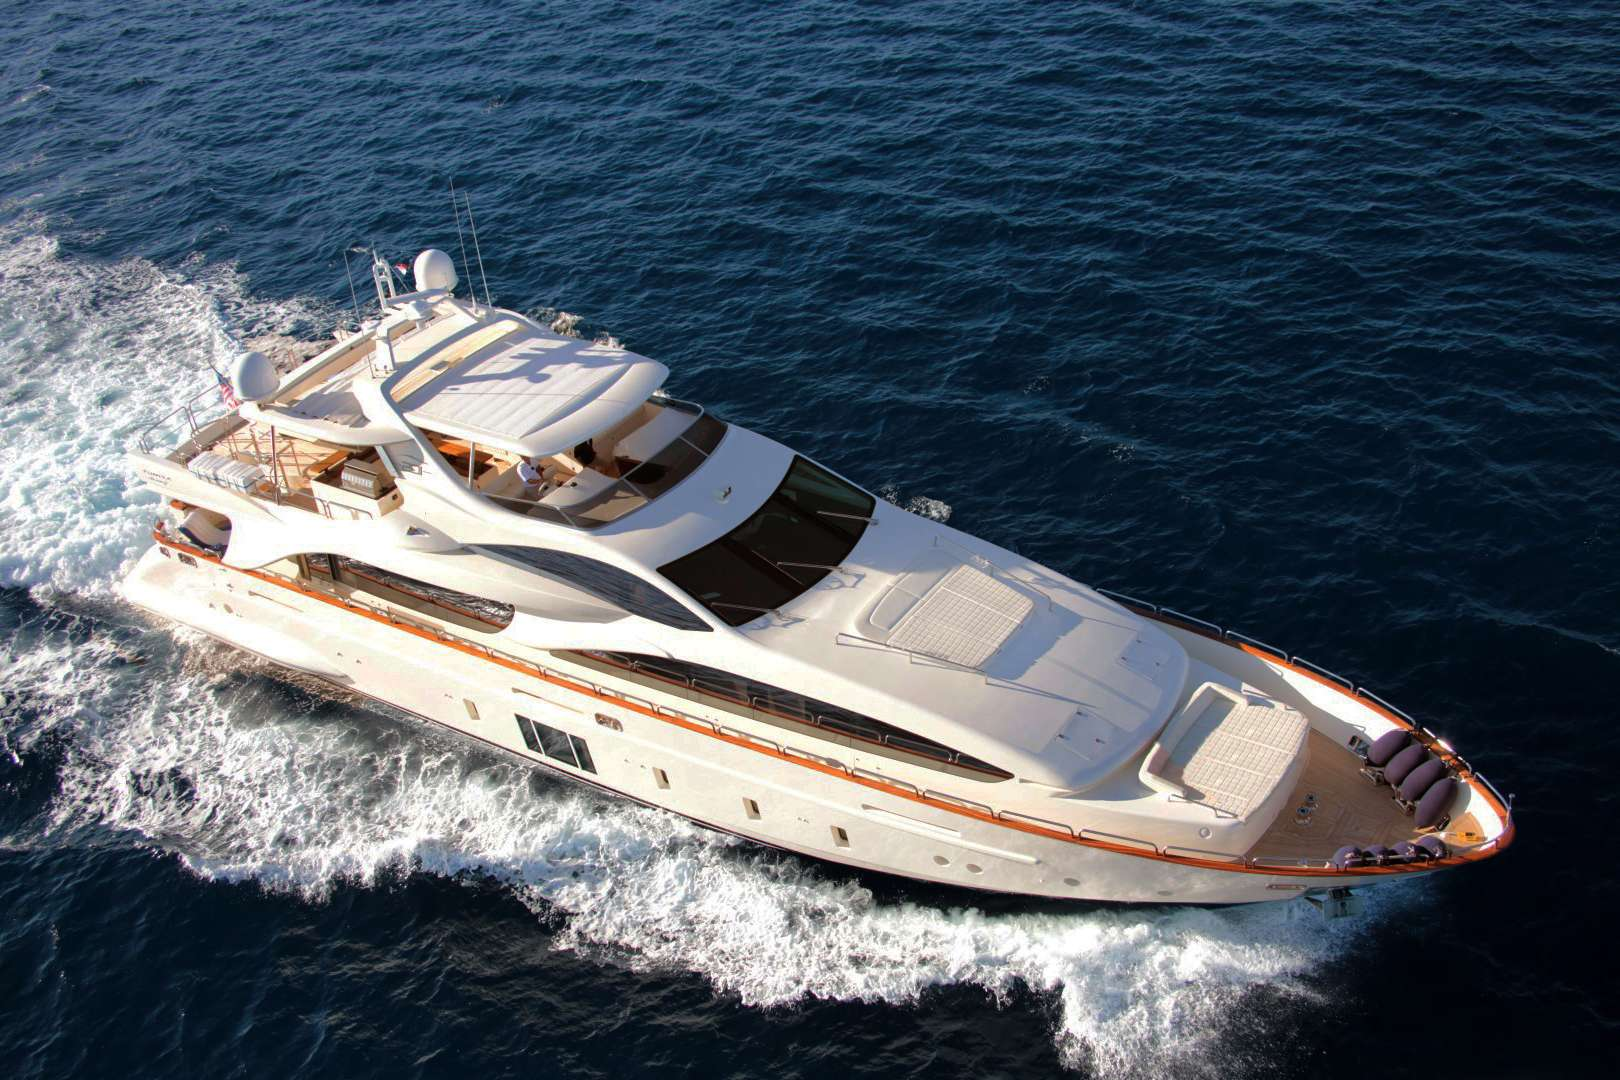 Charter with ANDIAMO! on compassyachtcharters.com